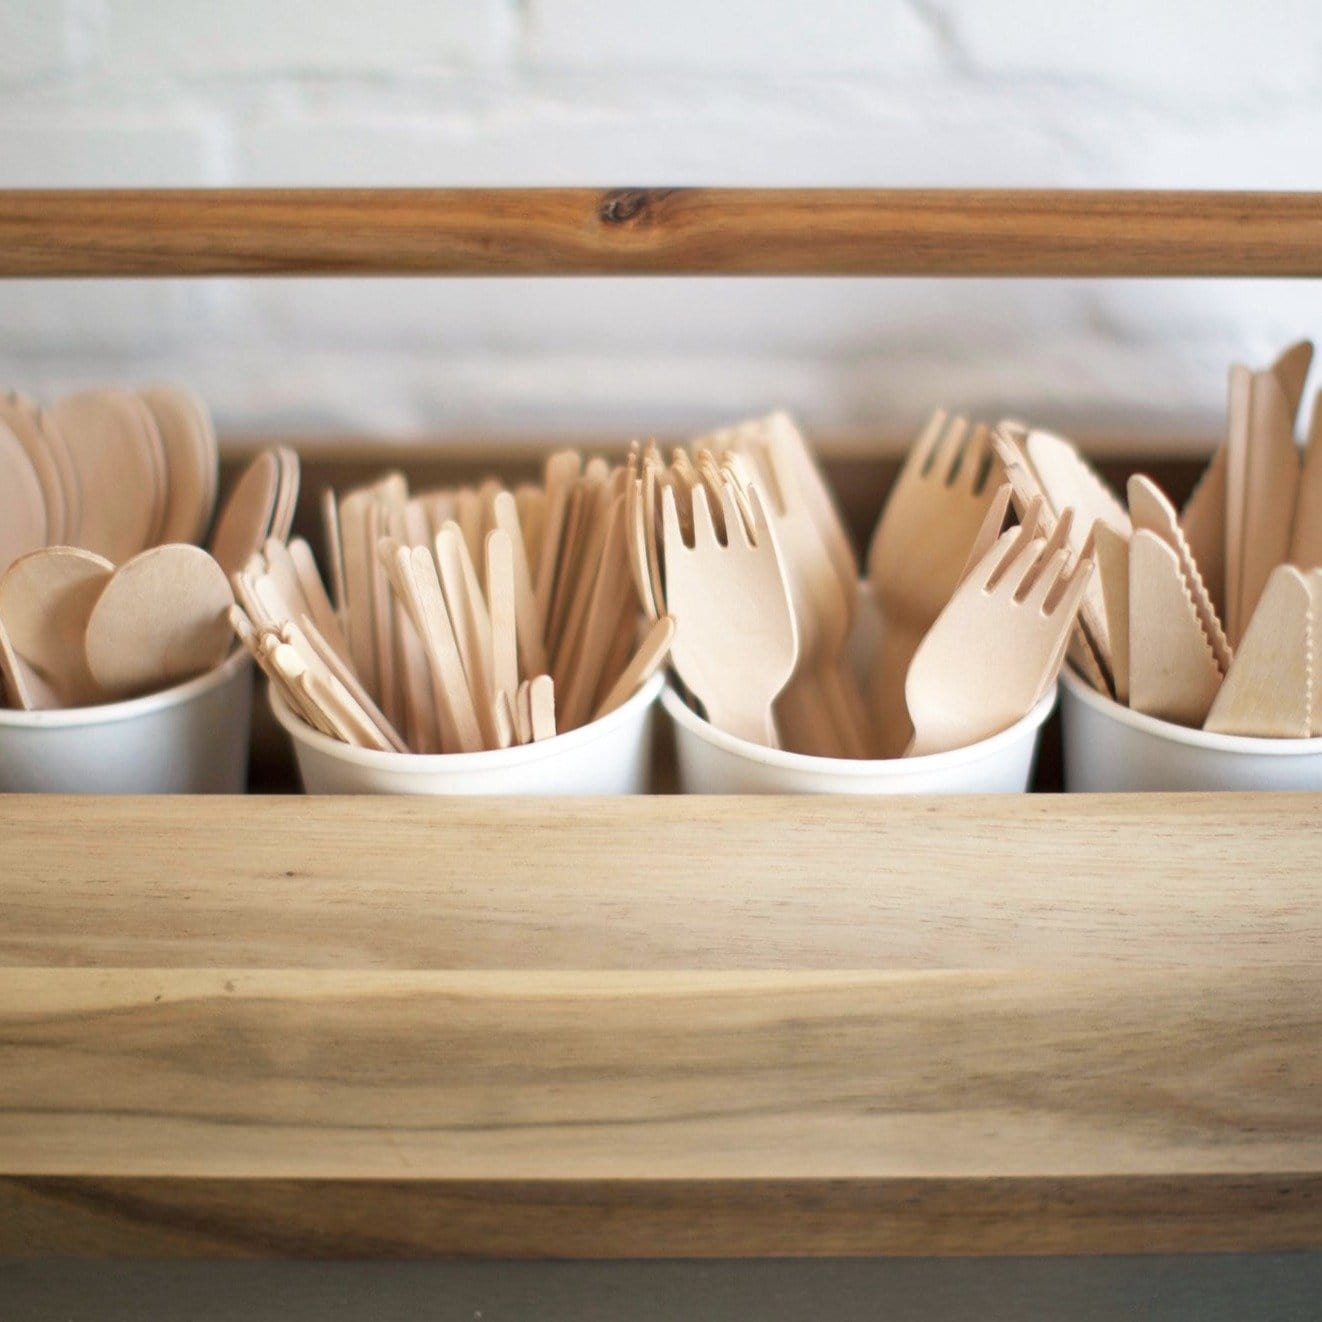 Cutlery - Wooden - Compostable - NaturePac